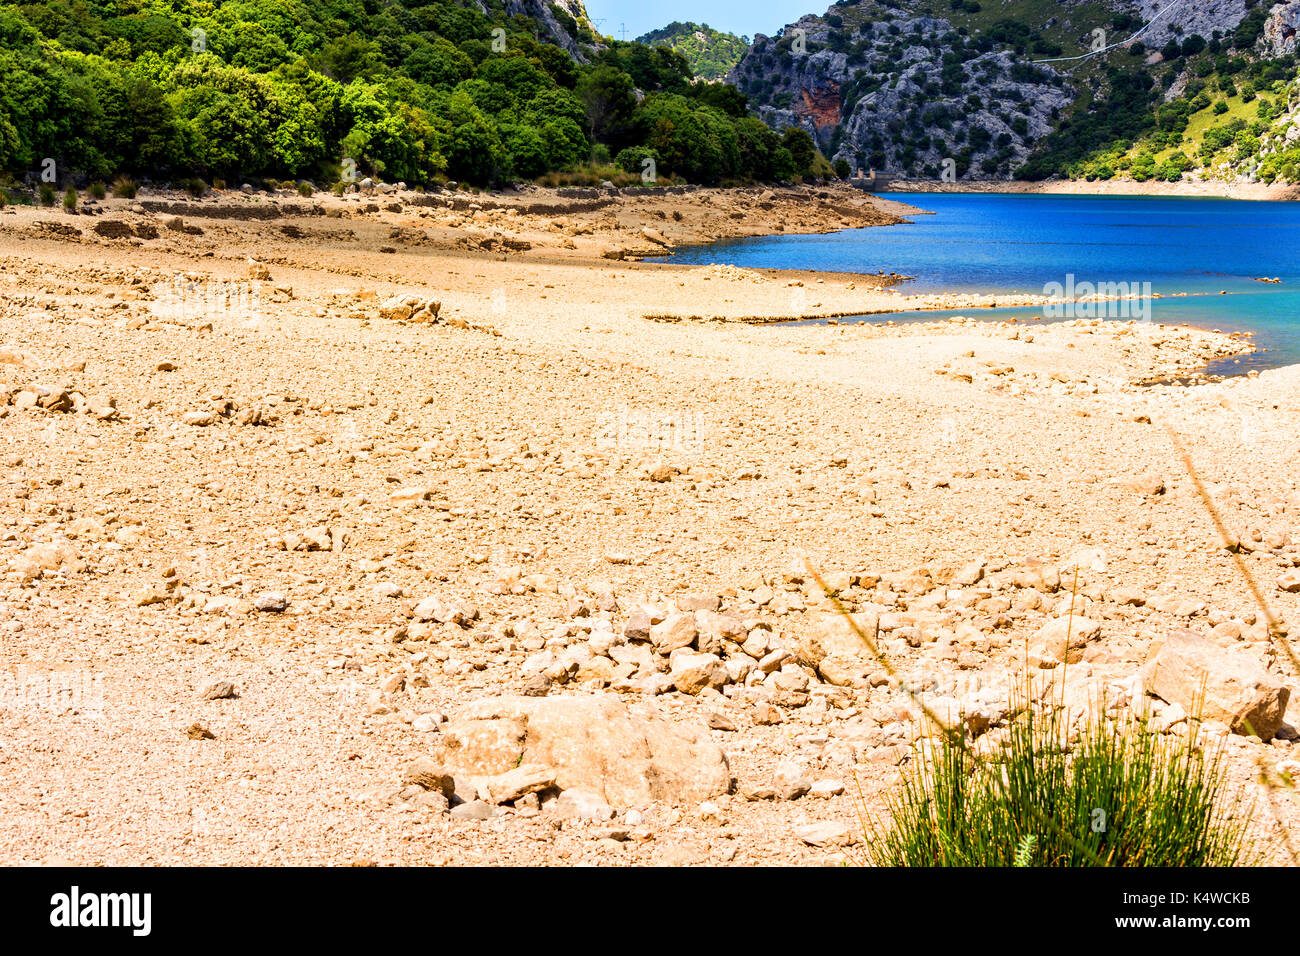 Almost dried out riverbed and cracked ground with stones in the background the last remnants of water. - Stock Image